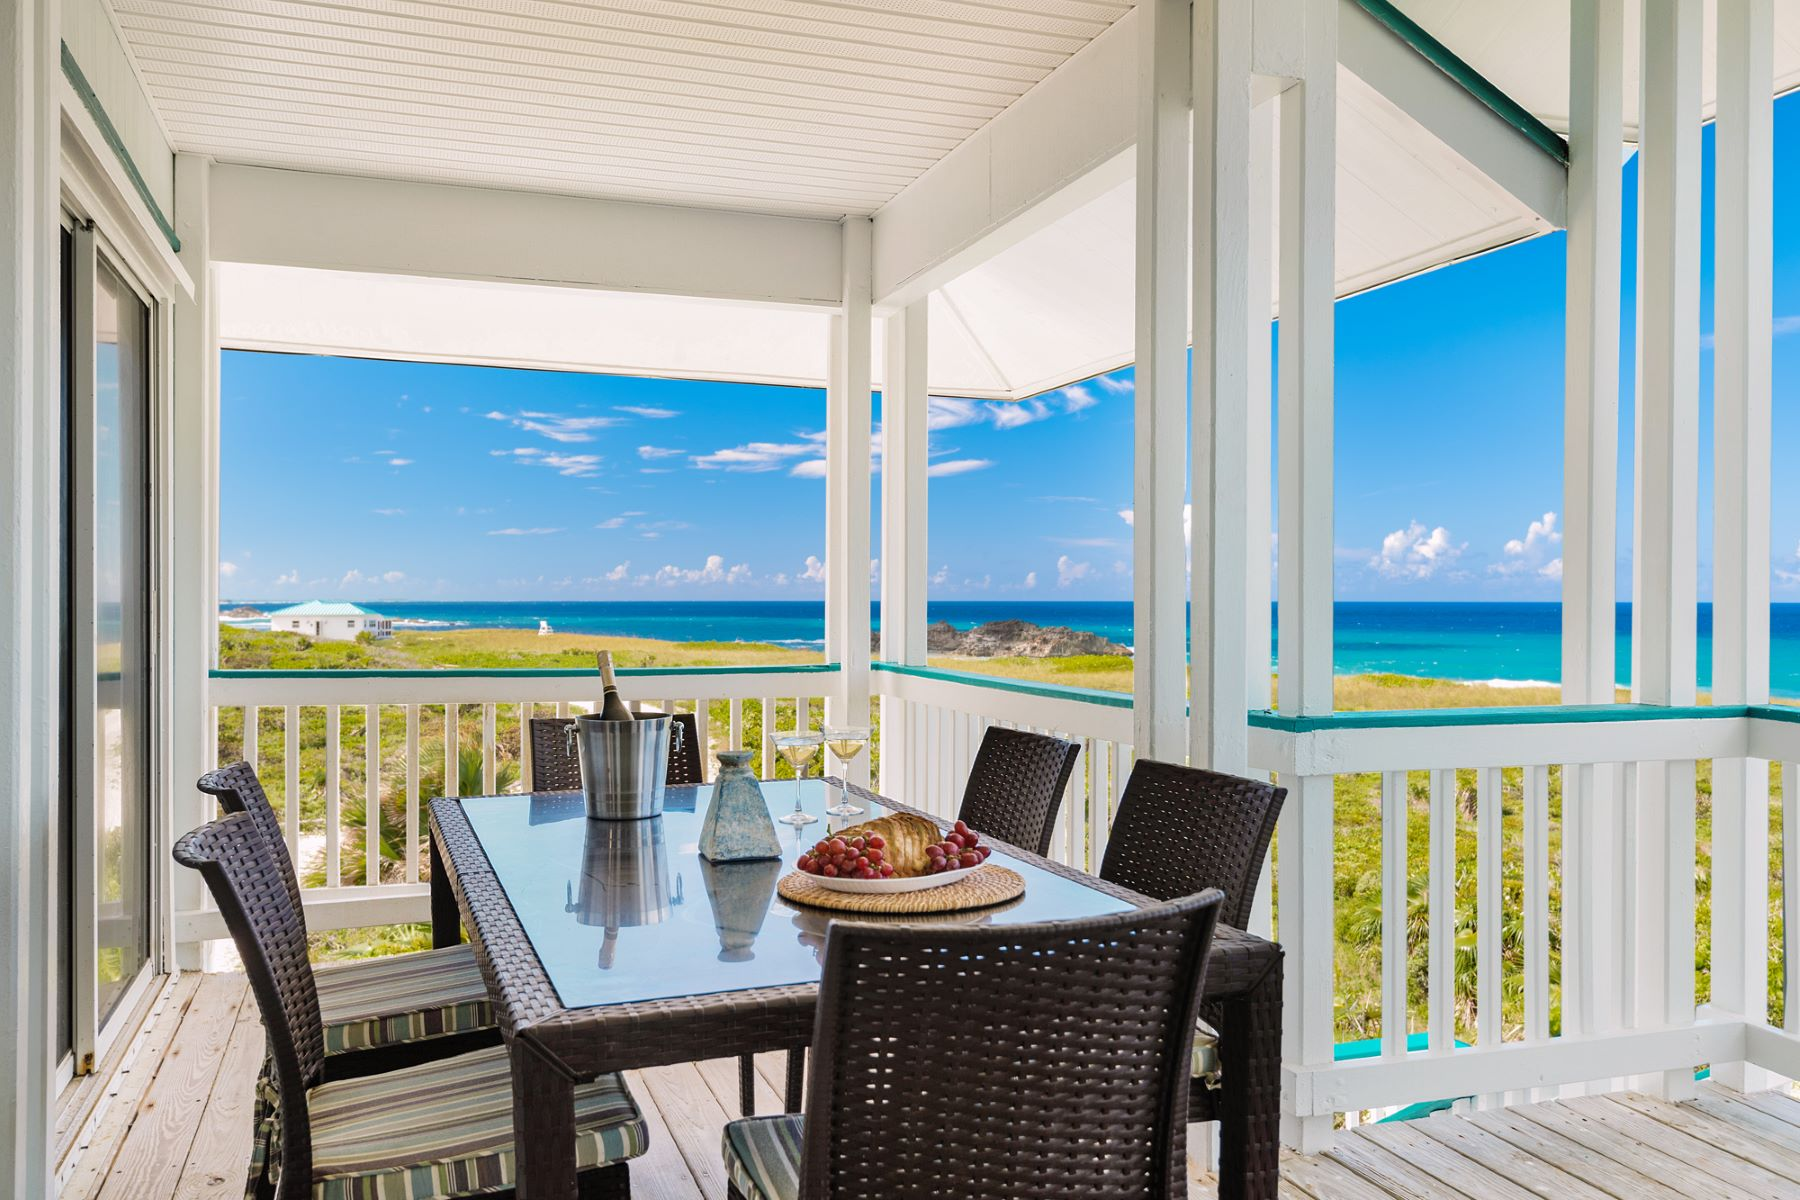 Single Family Home for Sale at Stargazer - Middle Caicos Mudjin Harbour, Middle Caicos Turks And Caicos Islands